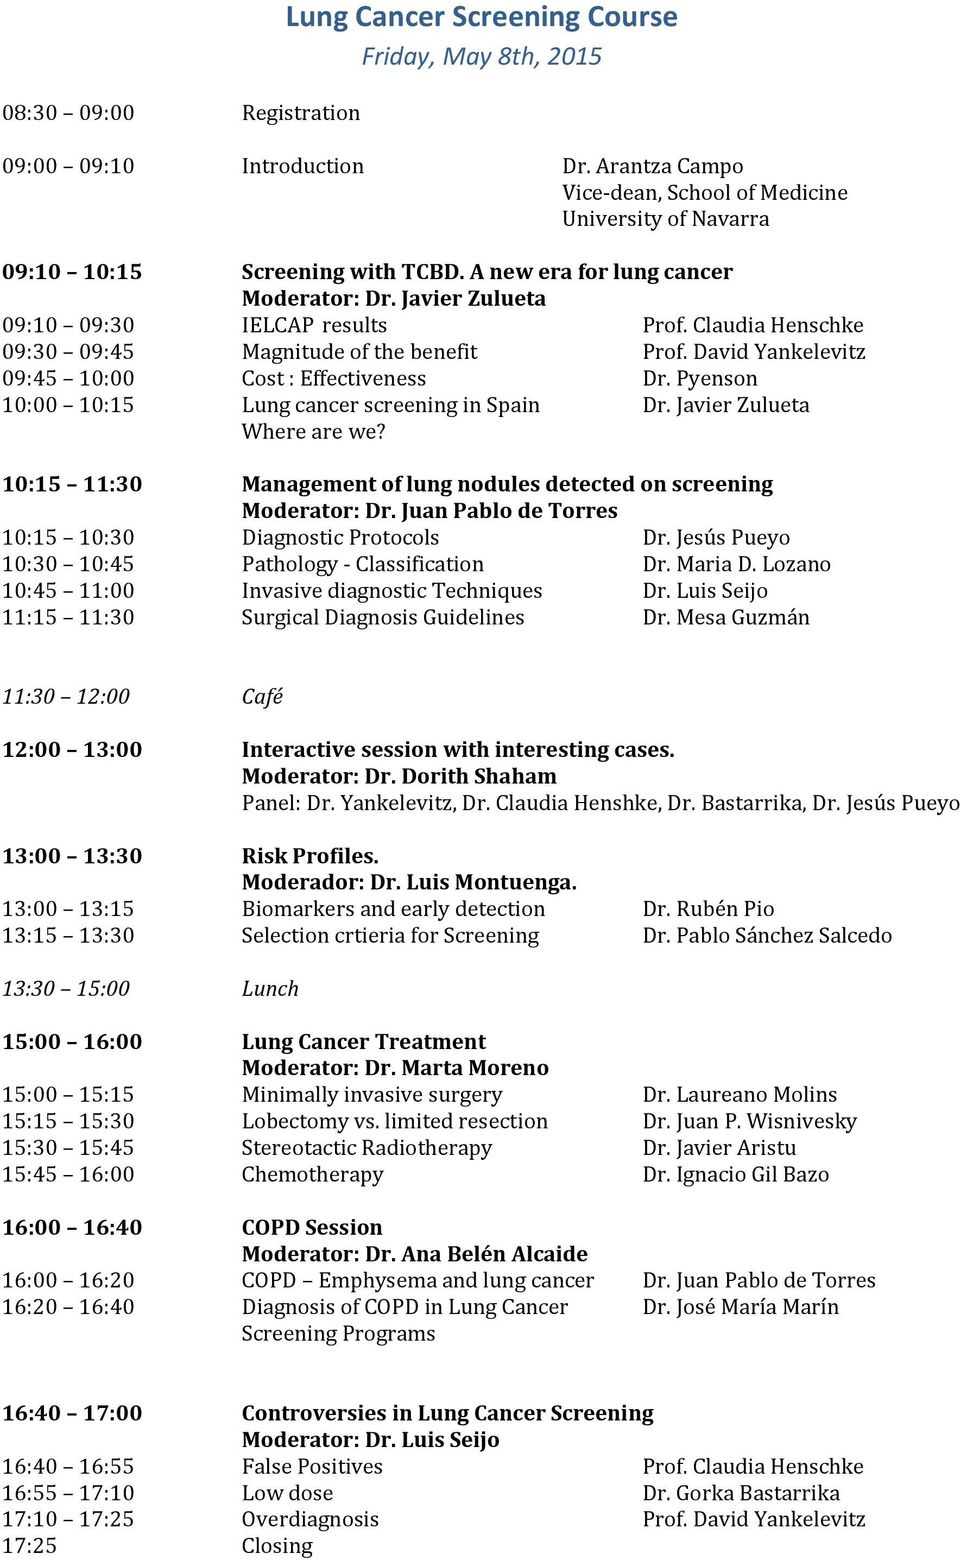 Claudia Henschke 09:30 09:45 Magnitude of the benefit Prof. David Yankelevitz 09:45 10:00 Cost : Effectiveness Dr. Pyenson 10:00 10:15 Lung cancer screening in Spain Dr. Javier Zulueta Where are we?